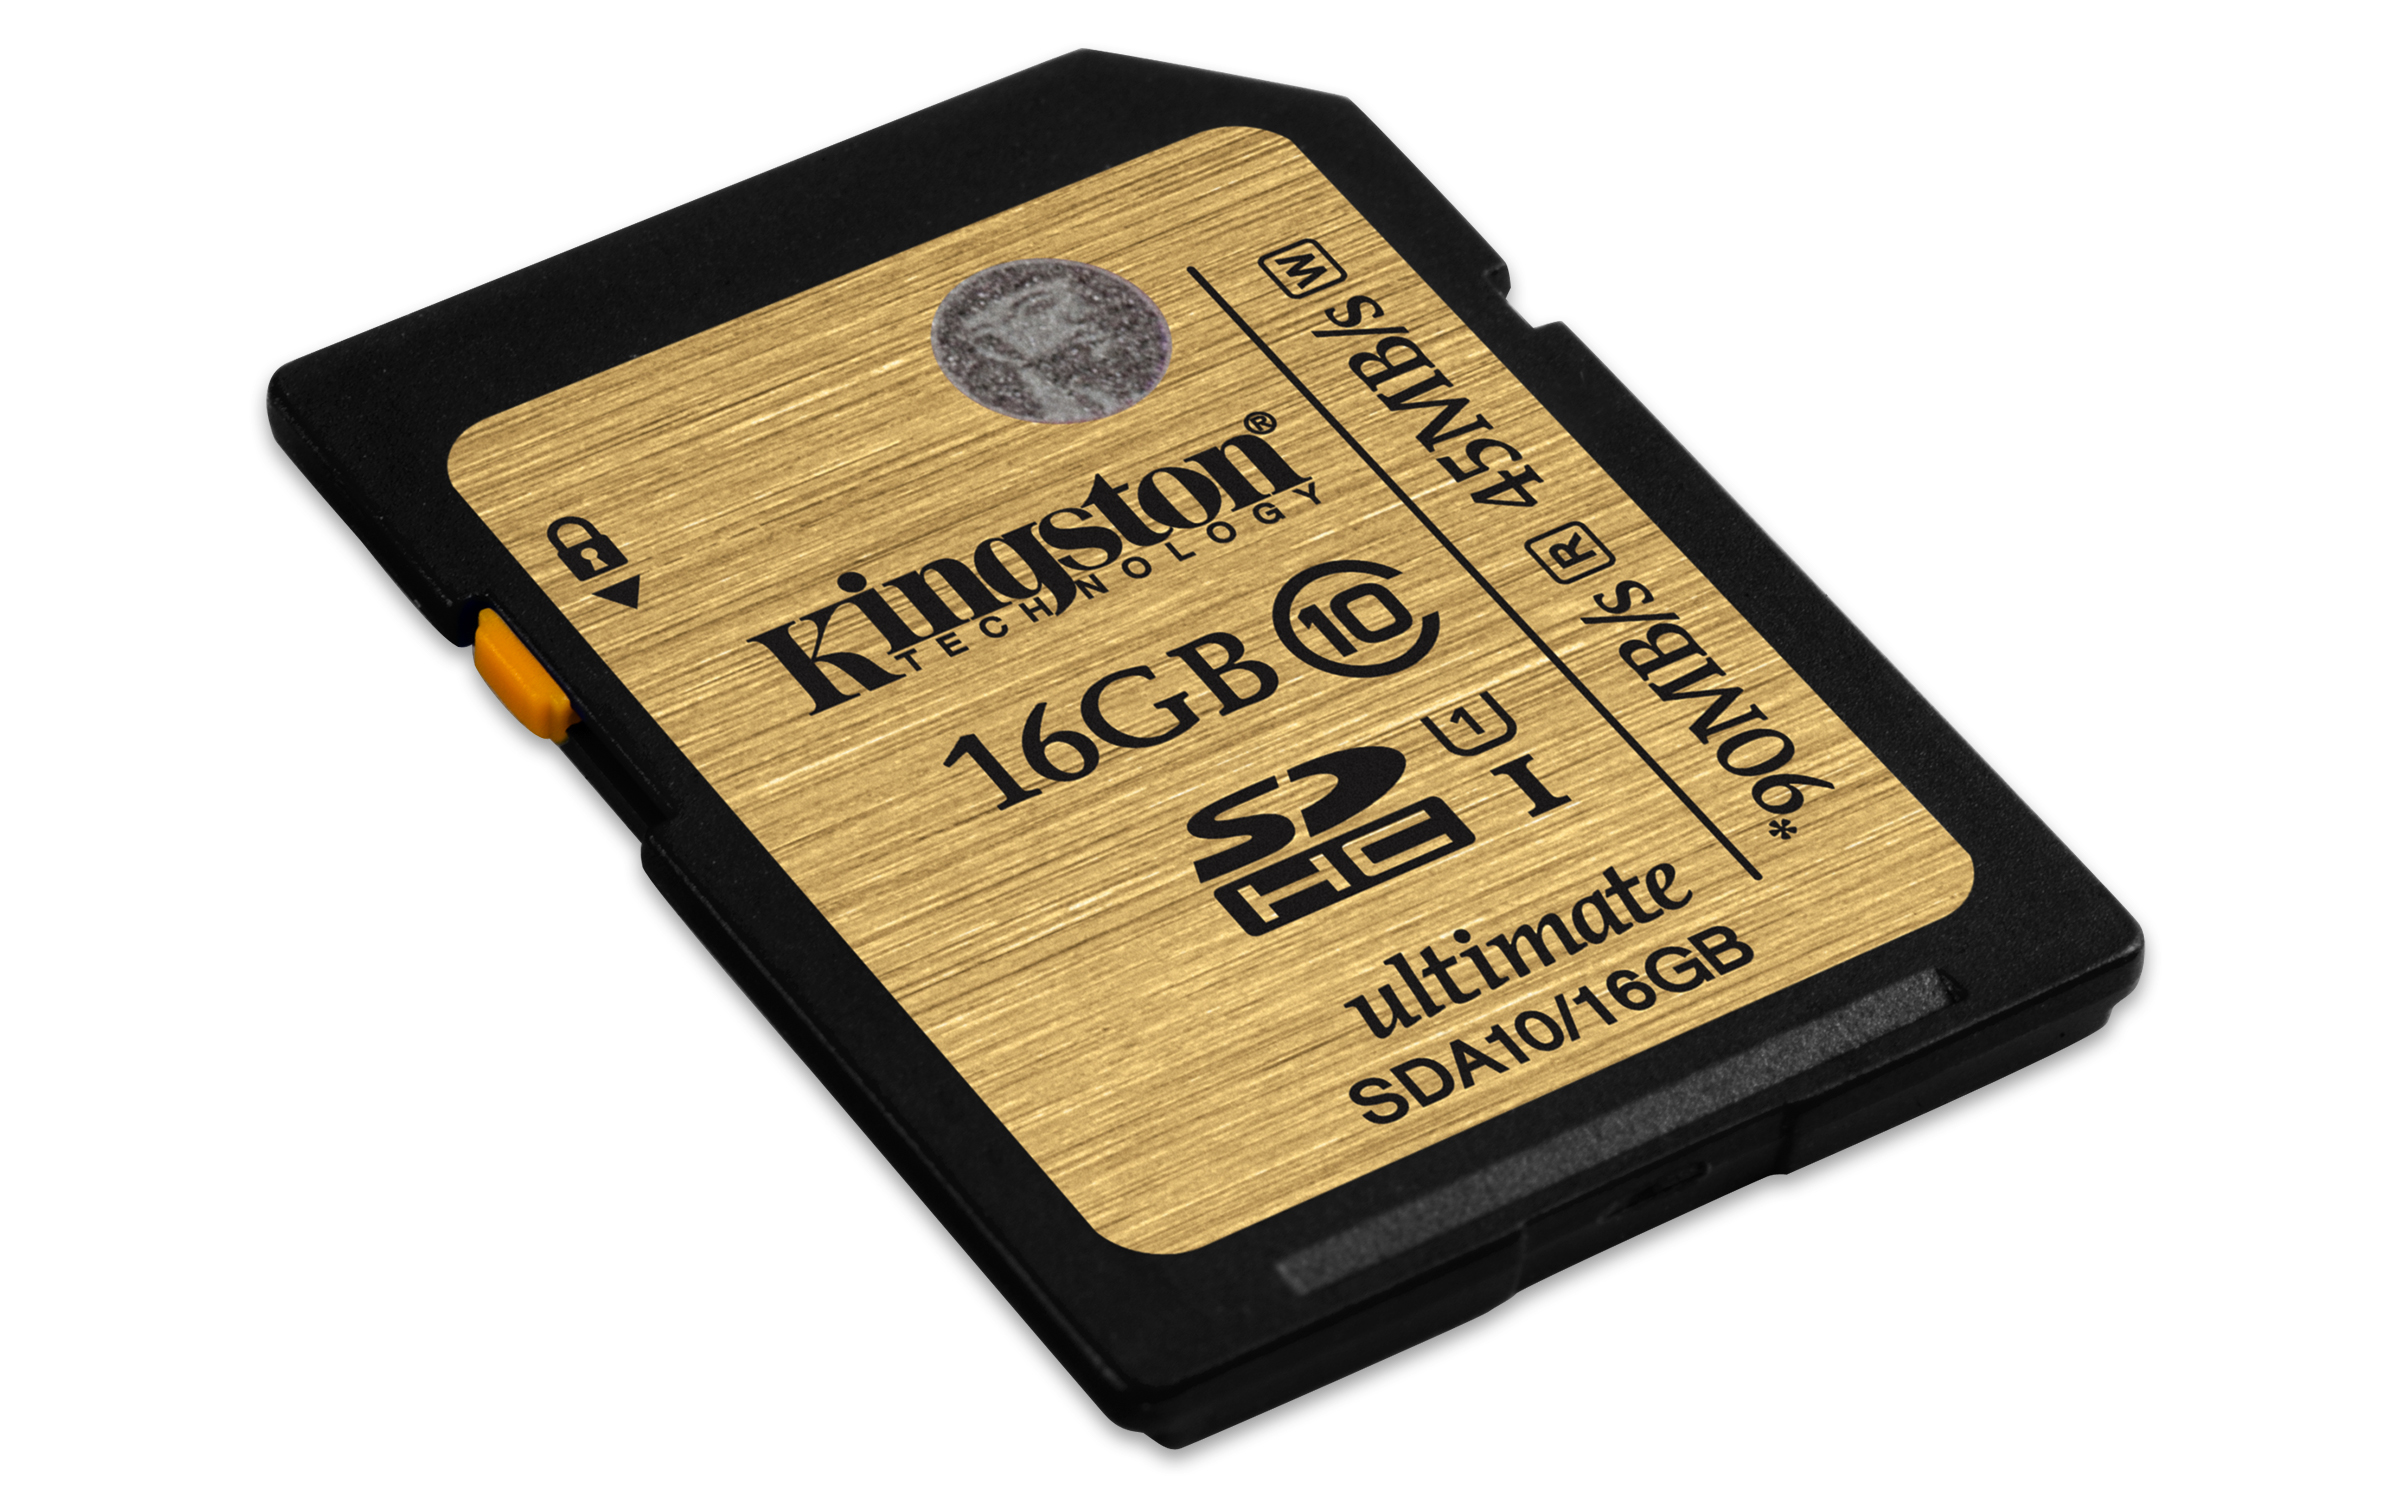 KINGSTON 16GB SDXC Class 10 UHS-I 90MB/s R, 45MB/s W Flash Card